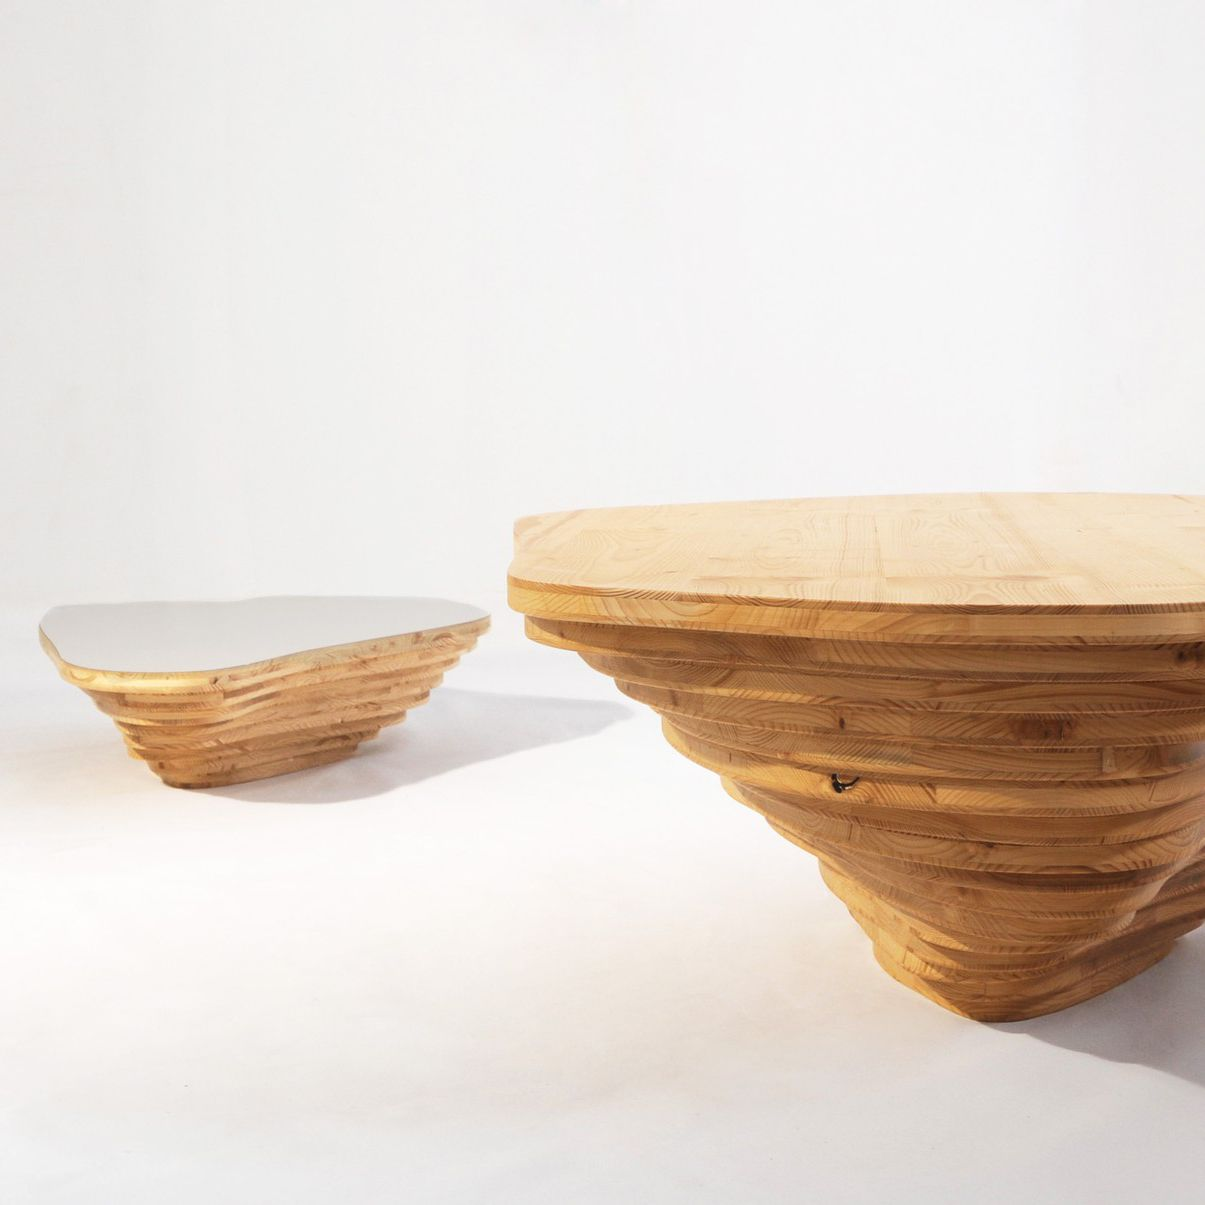 Organic Design Coffee Table Wooden Commercial Modular Livingisland By Stéphanie Marin